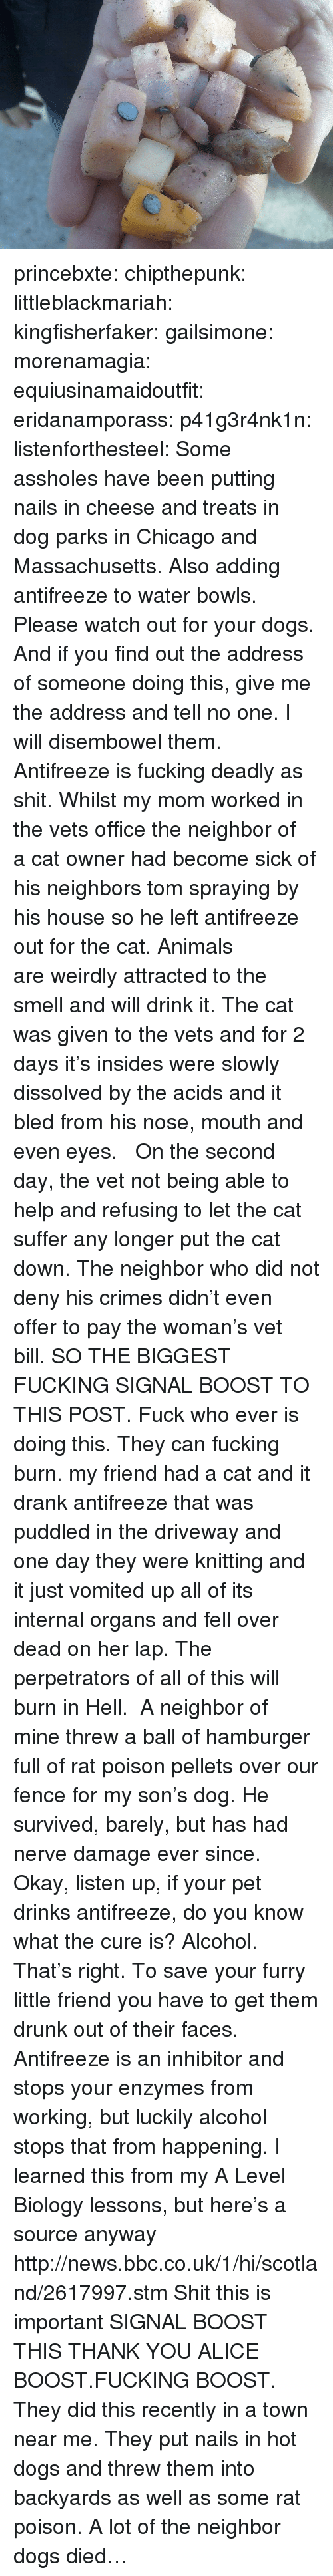 Animals, Chicago, and Dogs: princebxte:  chipthepunk:  littleblackmariah:  kingfisherfaker:  gailsimone:  morenamagia:  equiusinamaidoutfit:  eridanamporass:  p41g3r4nk1n:  listenforthesteel:  Some assholes have been putting nails in cheese and treats in dog parks in Chicago and Massachusetts. Also adding antifreeze to water bowls.  Please watch out for your dogs. And if you find out the address of someone doing this, give me the address and tell no one. I will disembowel them.  Antifreeze is fucking deadly as shit. Whilst my mom worked in the vets office theneighborof acat ownerhad become sick of hisneighborstom spraying by his house so he left antifreeze out for the cat. Animals areweirdlyattracted to the smell and will drink it. The cat was given to the vets and for 2 days it's insides were slowly dissolved by the acids and it bled from his nose, mouth and even eyes.  On the second day, the vet not being able to help and refusing to let the cat suffer any longer put the cat down. The neighbor who did not deny his crimes didn't even offer to pay the woman's vet bill. SO THE BIGGEST FUCKING SIGNAL BOOST TO THIS POST. Fuck who ever is doing this. They can fucking burn.   my friend had a cat and it drank antifreeze that was puddled in the driveway and one day they were knitting and it just vomited up all of its internal organs and fell over dead on her lap.  The perpetrators of all of this will burn in Hell.  A neighbor of mine threw a ball of hamburger full of rat poison pellets over our fence for my son's dog. He survived, barely, but has had nerve damage ever since.  Okay, listen up, if your pet drinks antifreeze, do you know what the cure is? Alcohol. That's right. To save your furry little friend you have to get them drunk out of their faces. Antifreeze is an inhibitor and stops your enzymes from working, but luckily alcohol stops that from happening. I learned this from my A Level Biology lessons, but here's a source anyway http://news.bbc.co.uk/1/hi/scotland/2